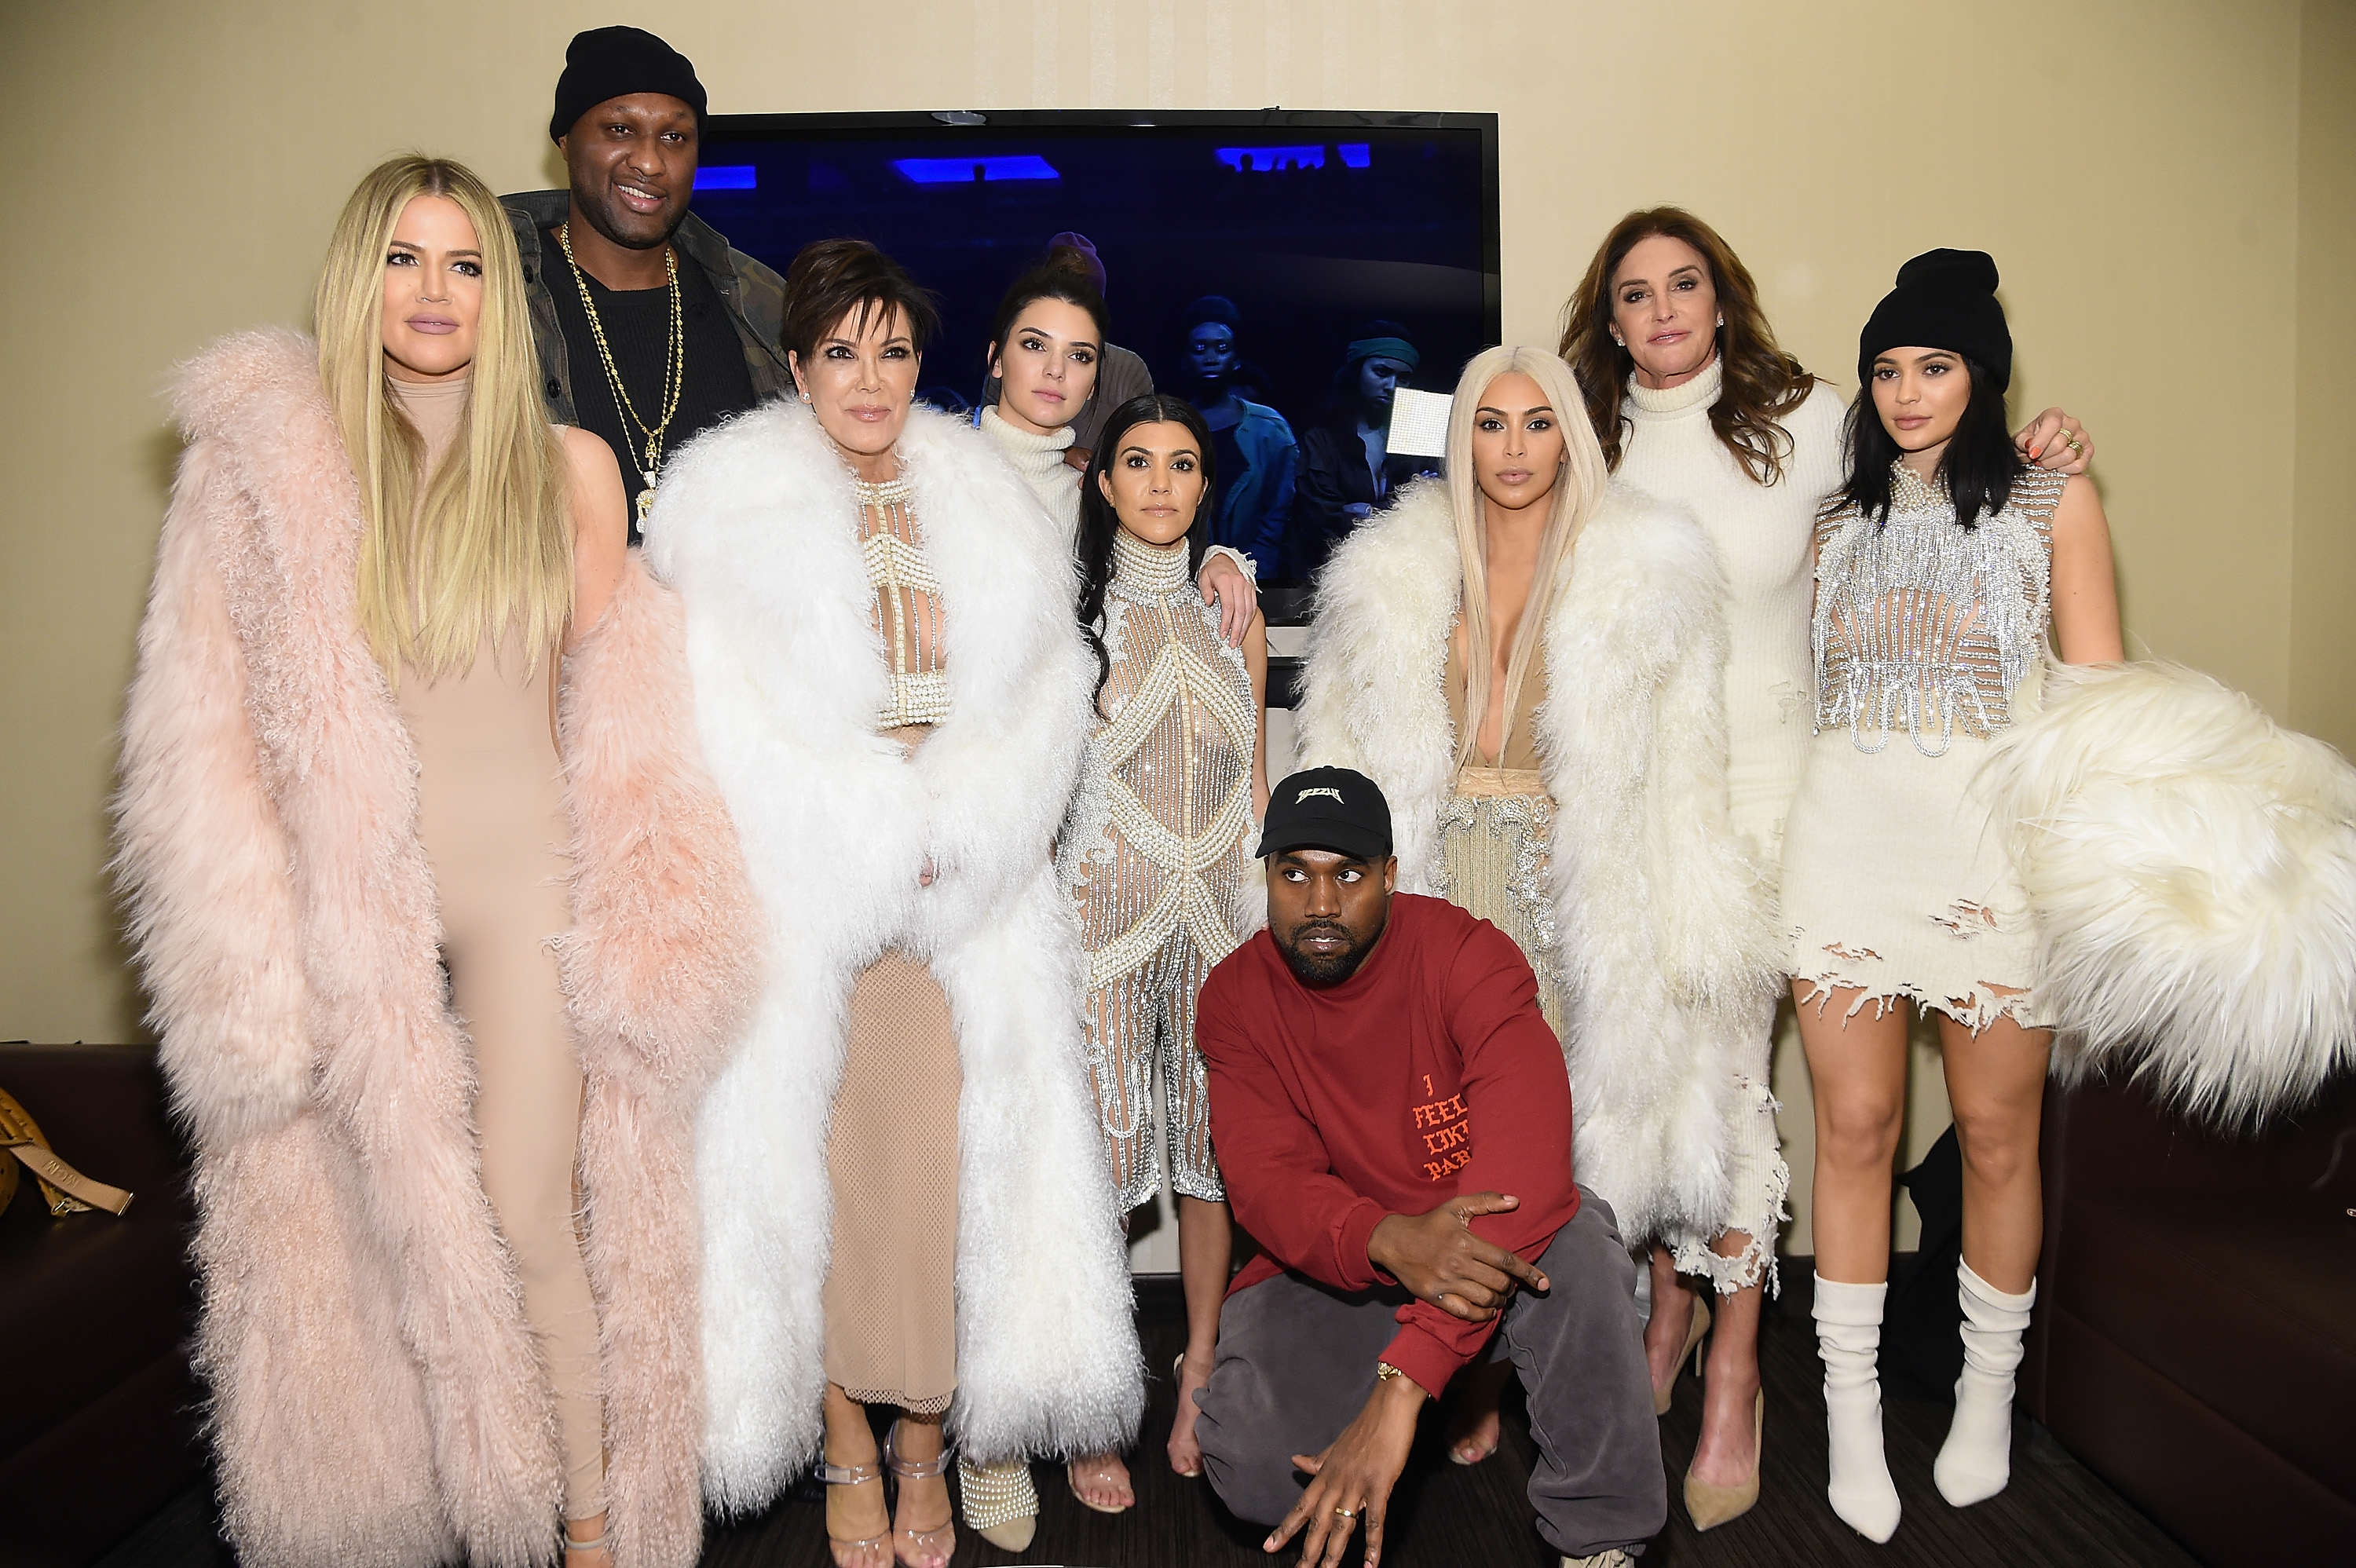 Theres A New Kardashian Musical And It Sounds Horrific GettyImages 509642778